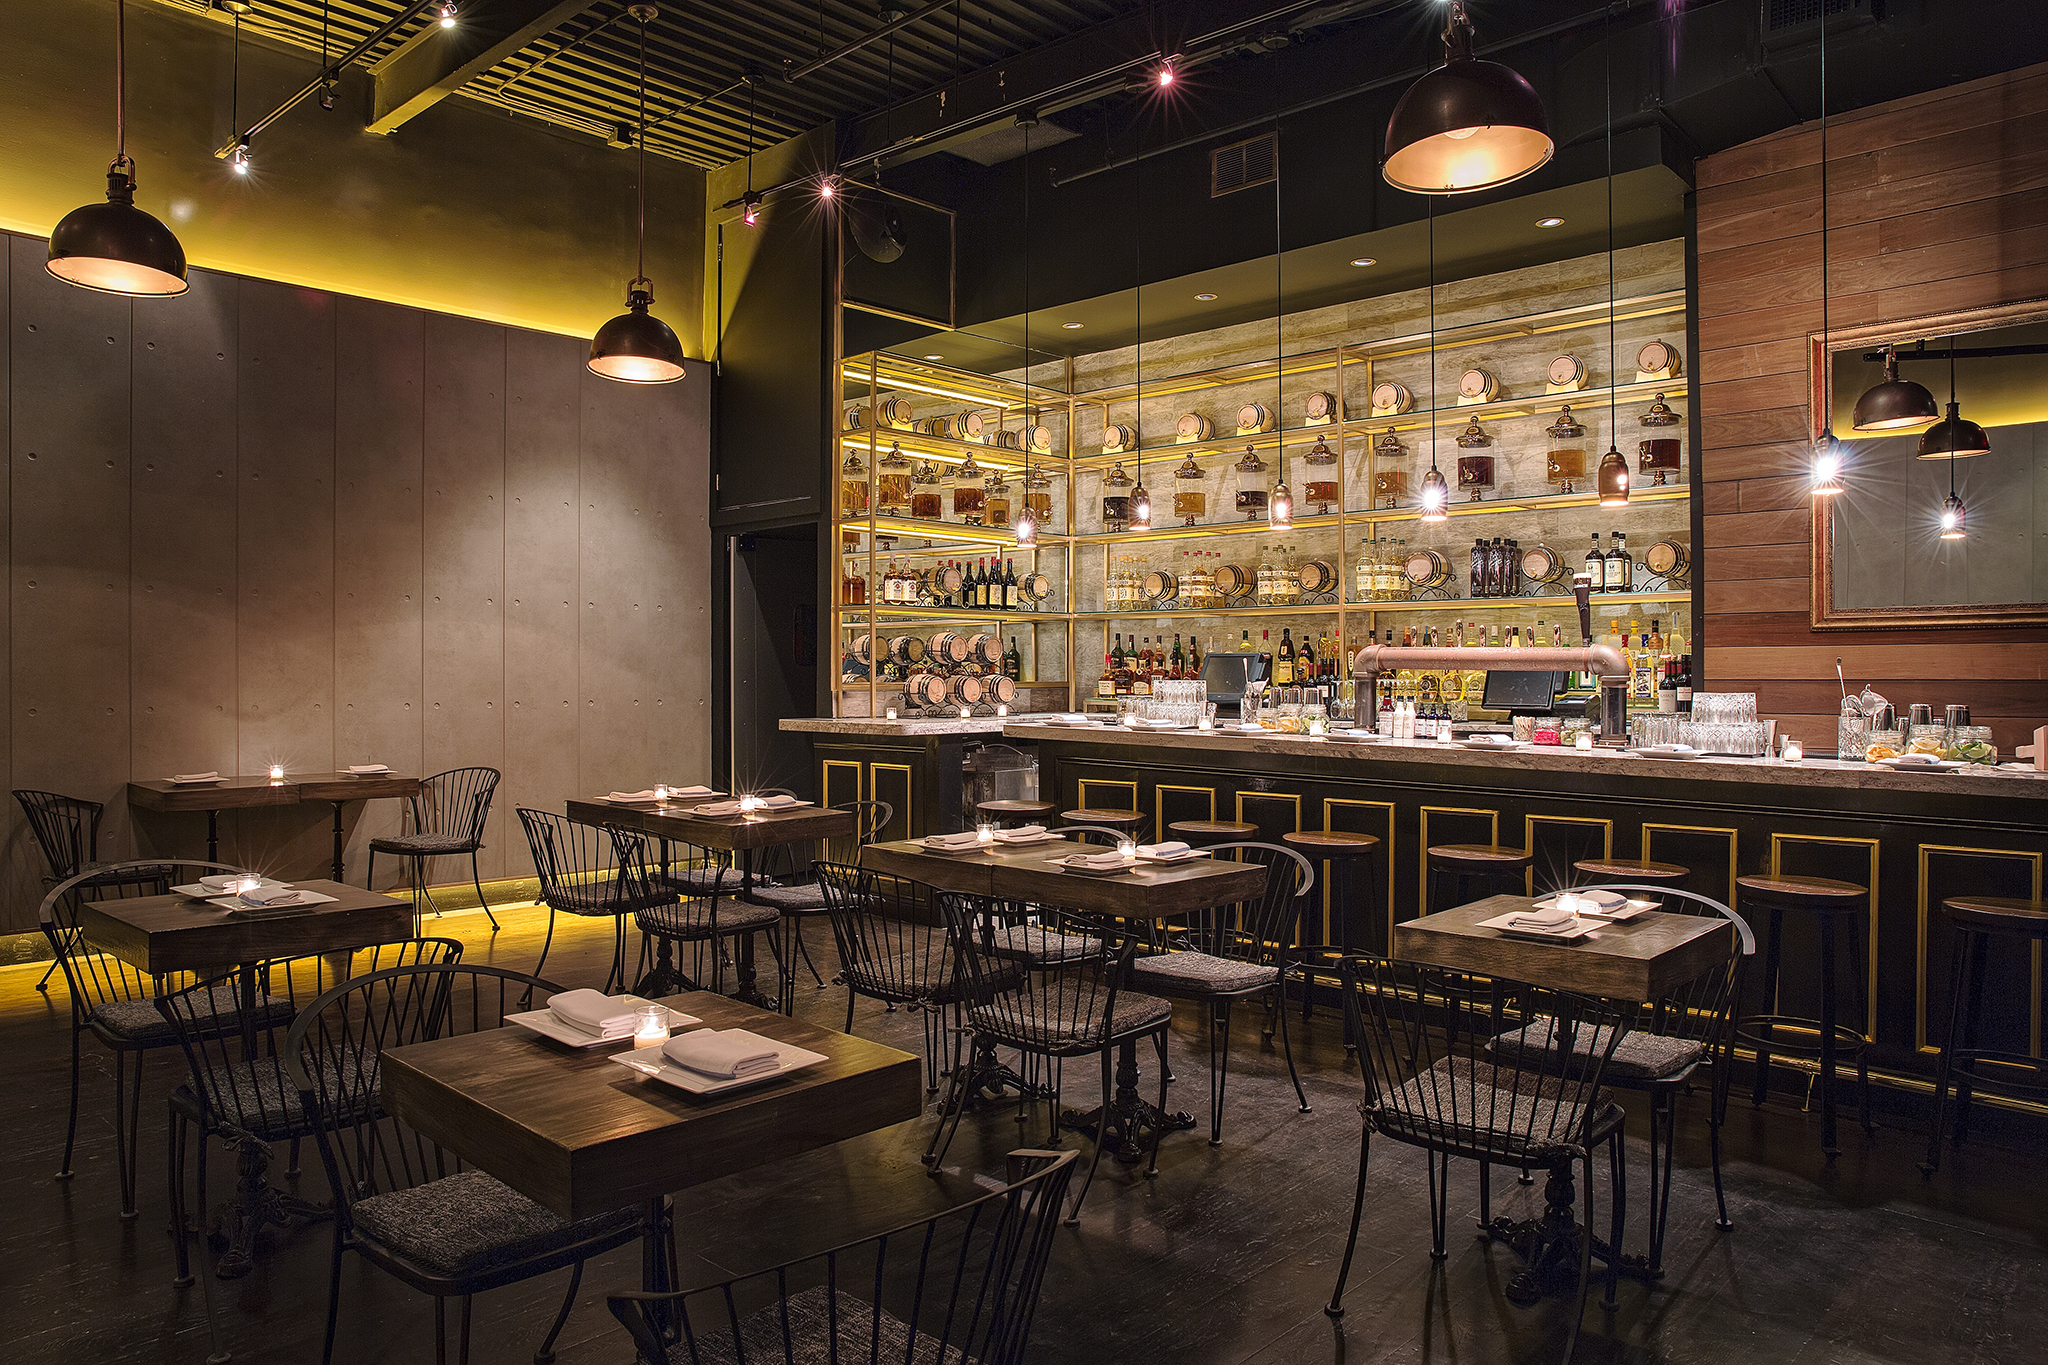 The Regal in Williamsburg is a small and cosy modern space for the locals to enjoy happy hour and more. Interior restaurant photographer NY. SGM Photography